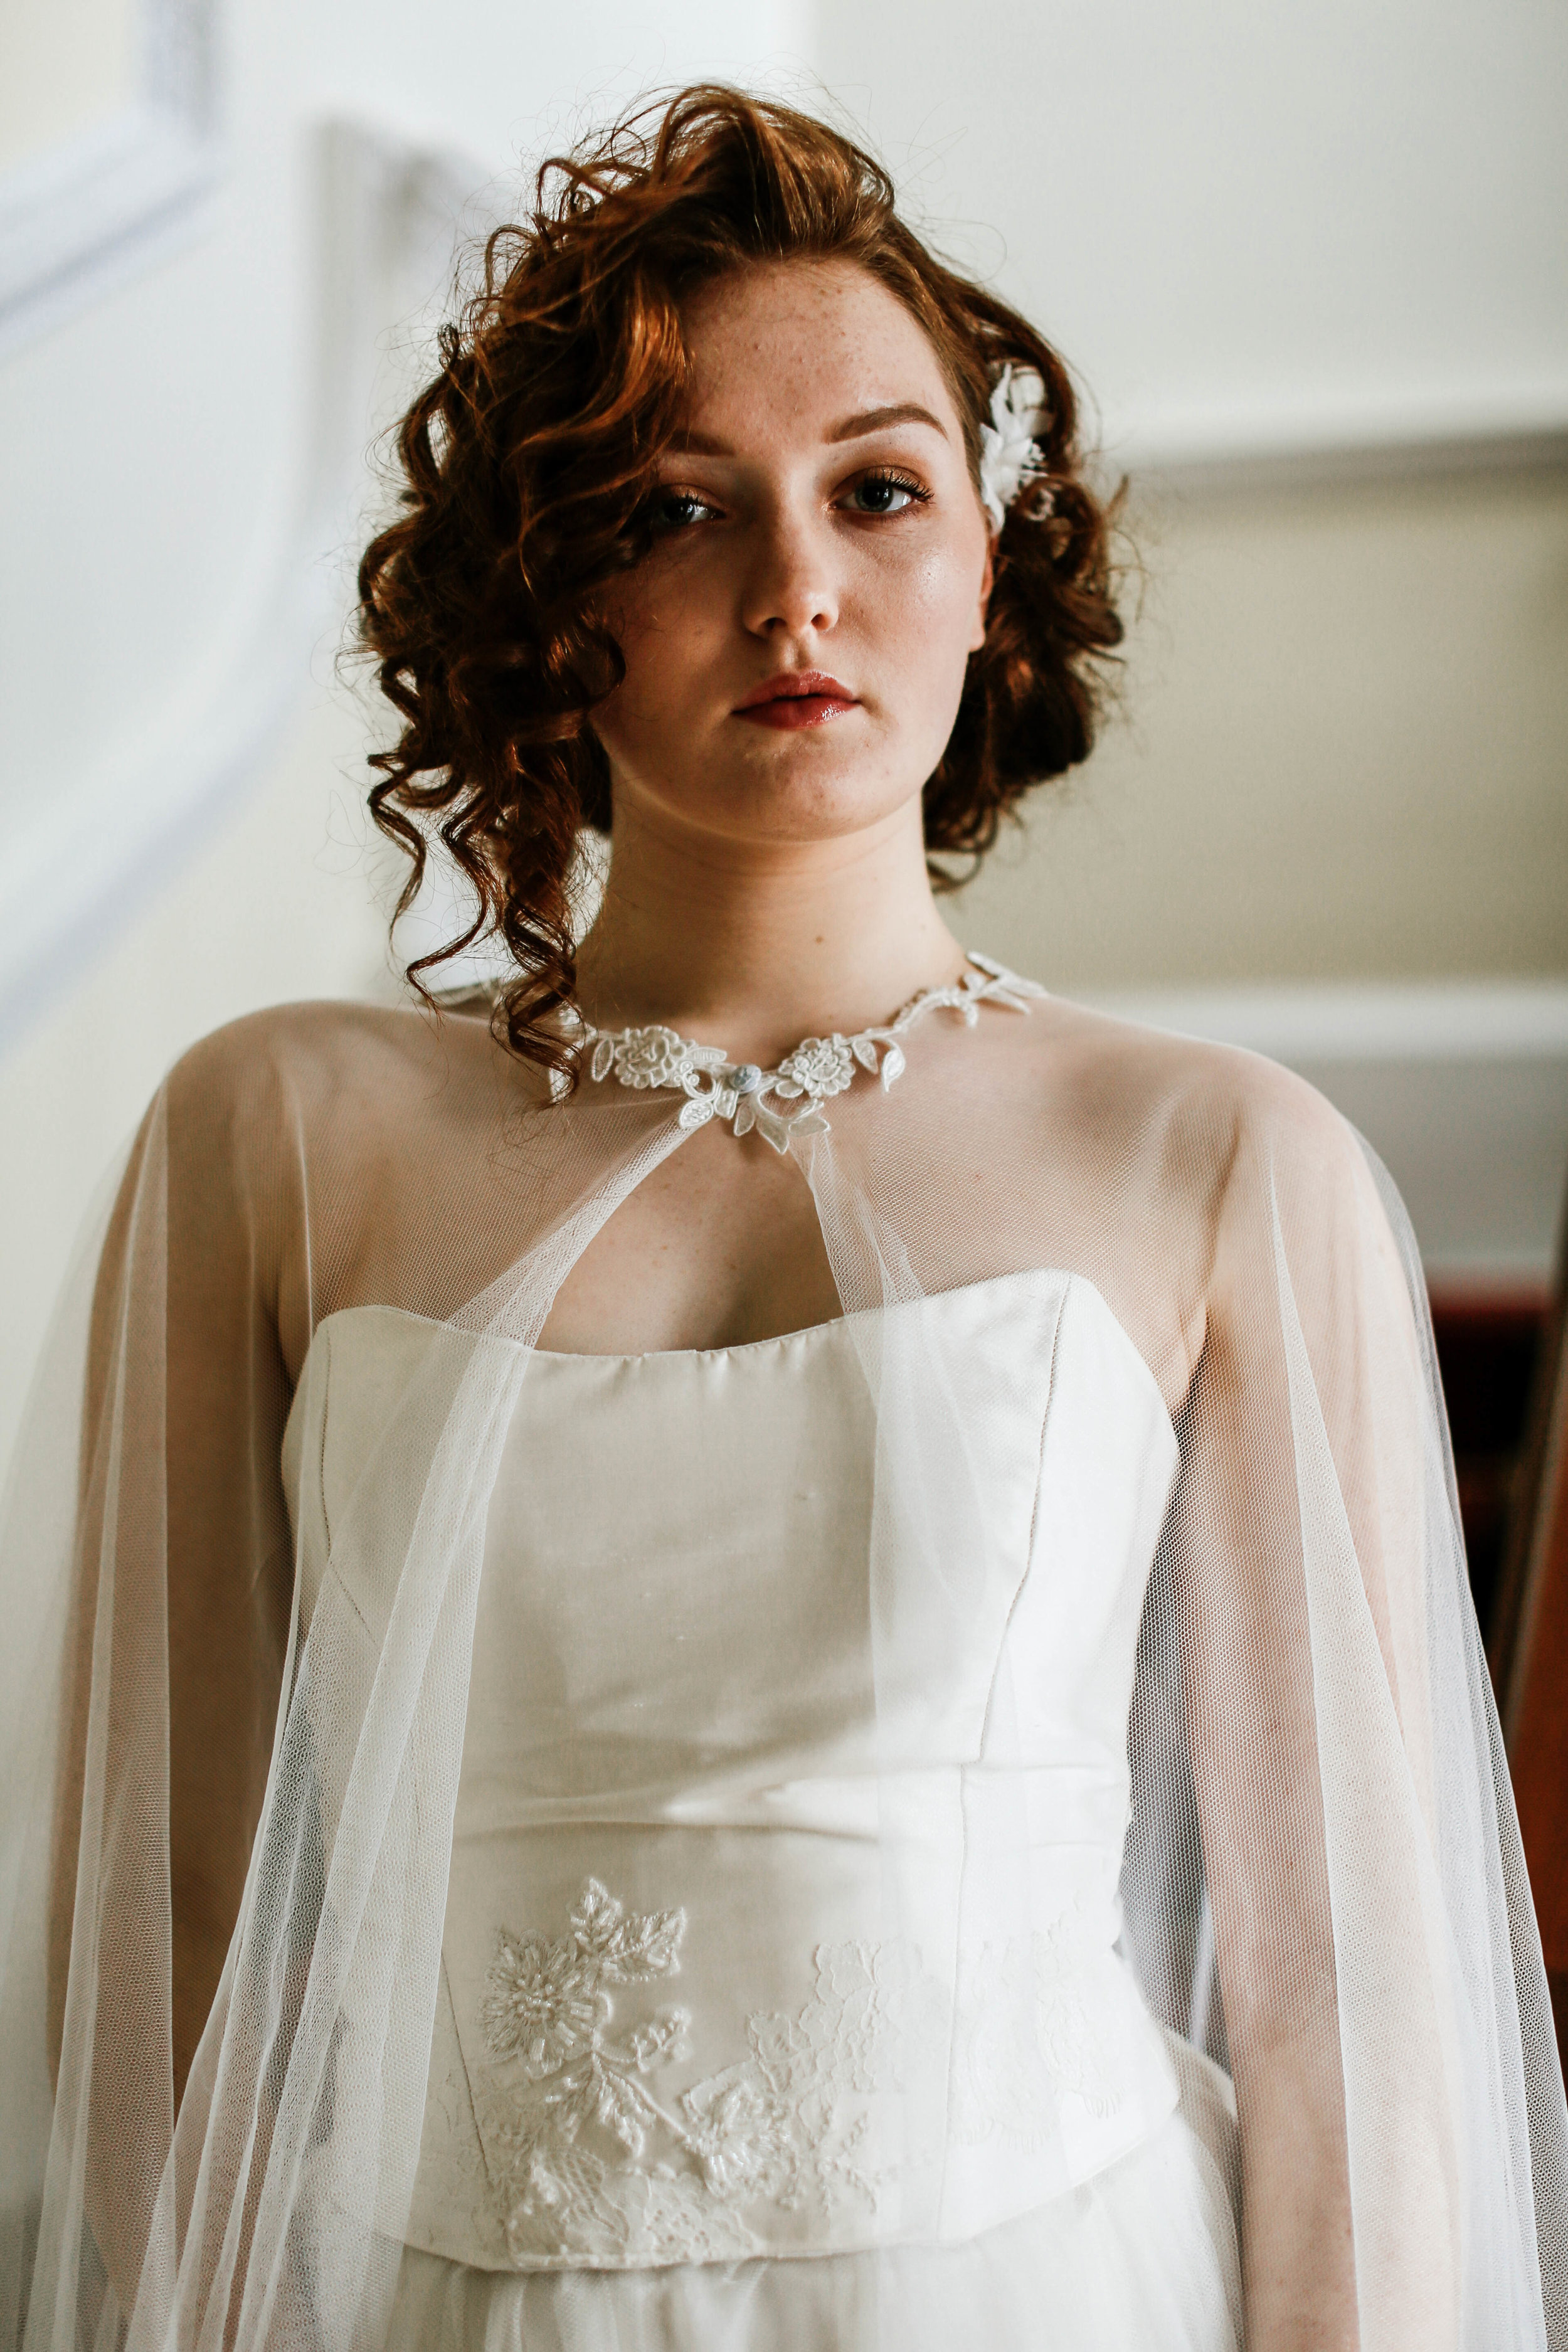 Couture bespoke wedding cape, hand made in Truro, Cornwall UK